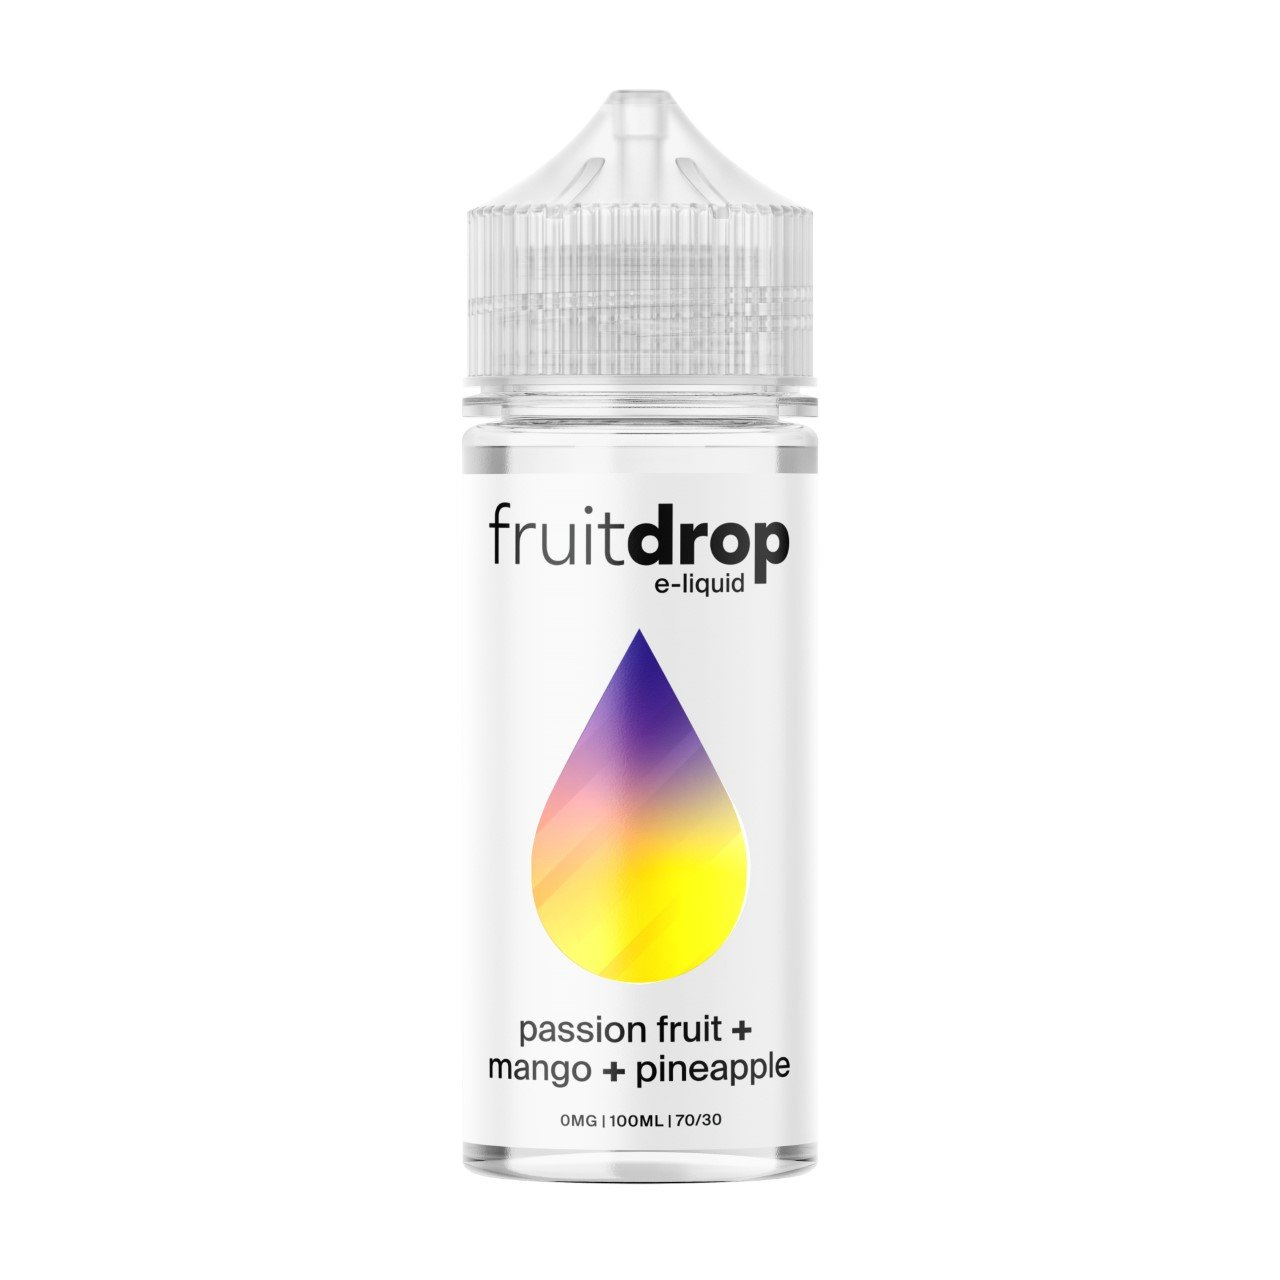 Fruit_Drop_100ml_Bottle_Mockup_Passion_Fruit_Mango_Pineapple